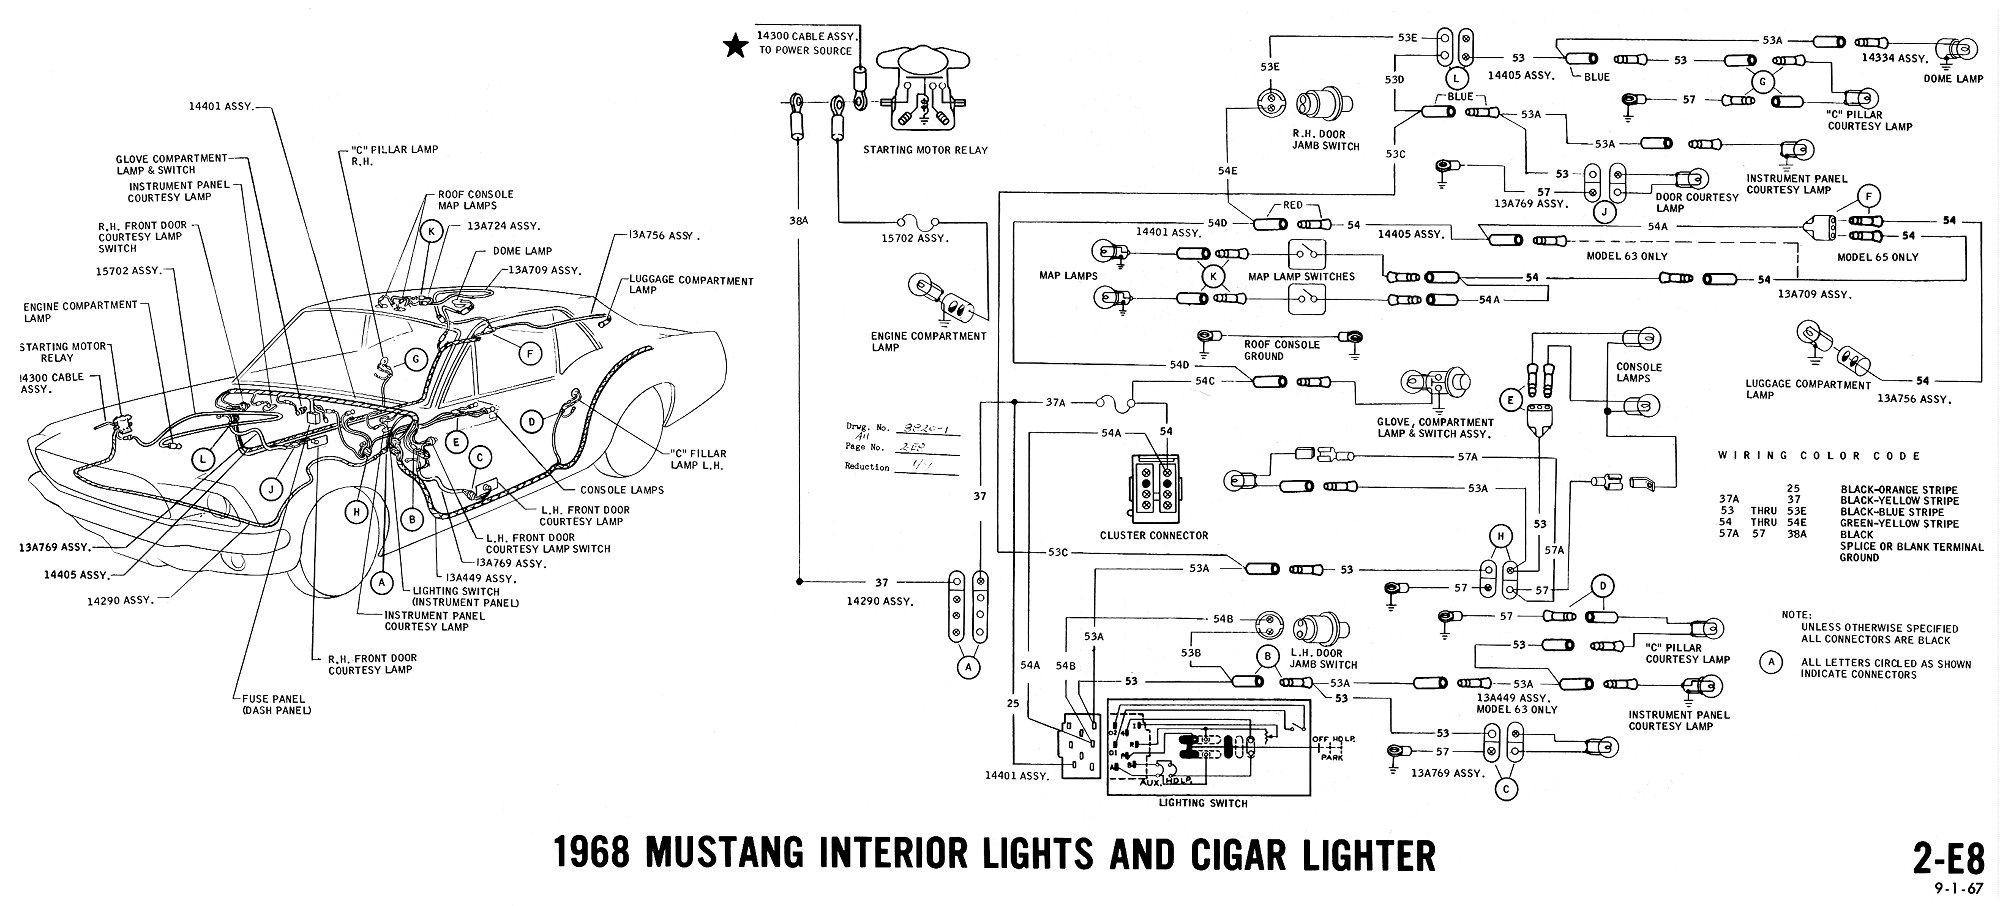 1968 Mustang Wiring Diagrams on Turn Signal Switch Wiring Diagram